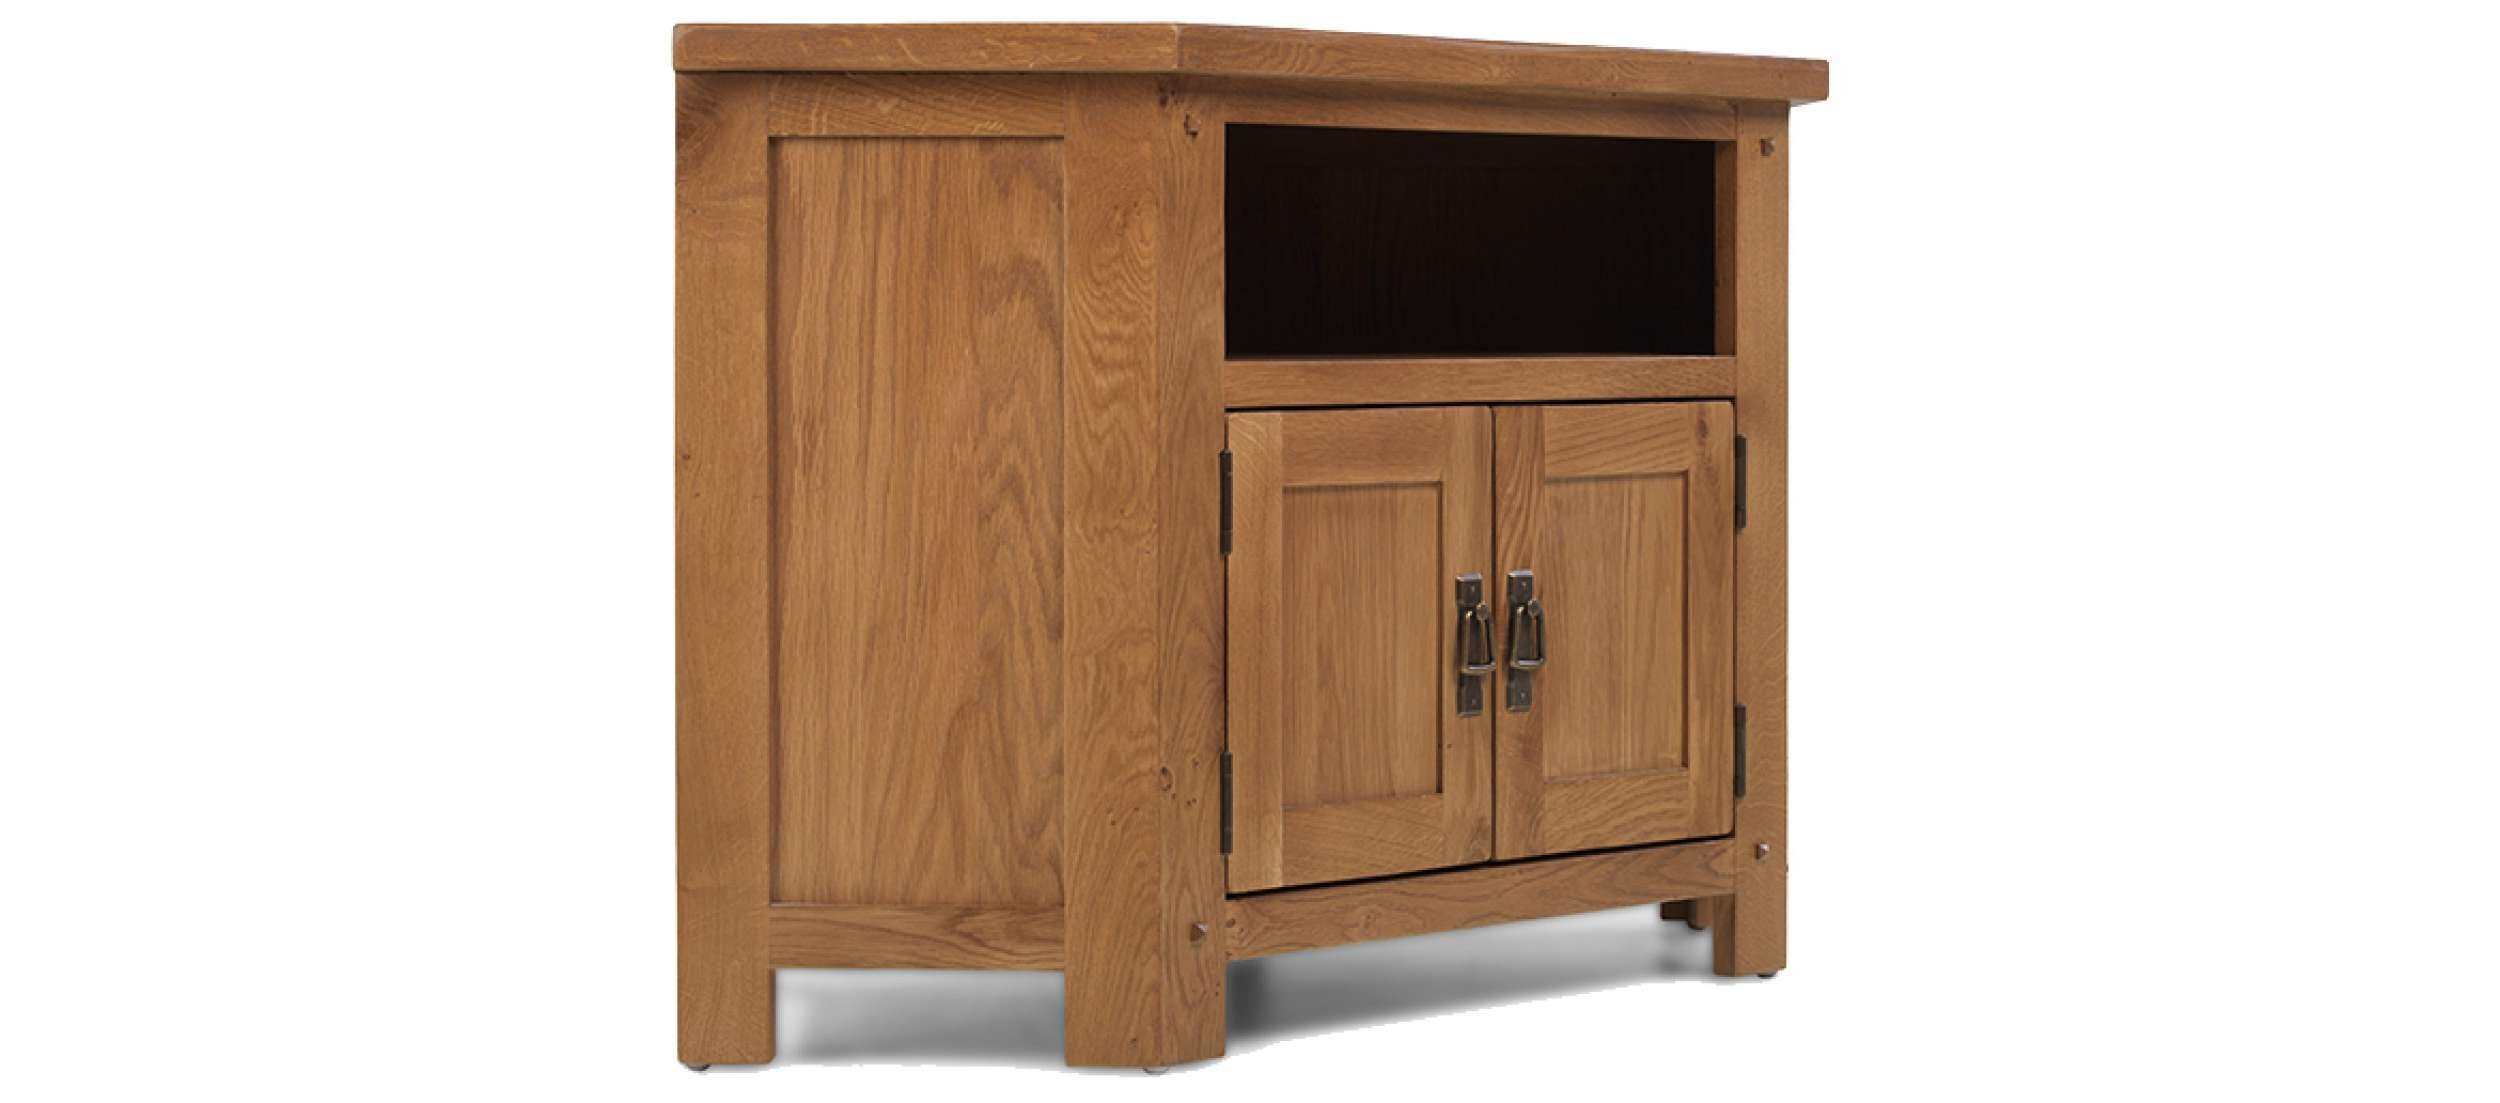 Rustic Oak Corner Tv Cabinet | Quercus Living Inside Corner Tv Cabinets (View 15 of 20)